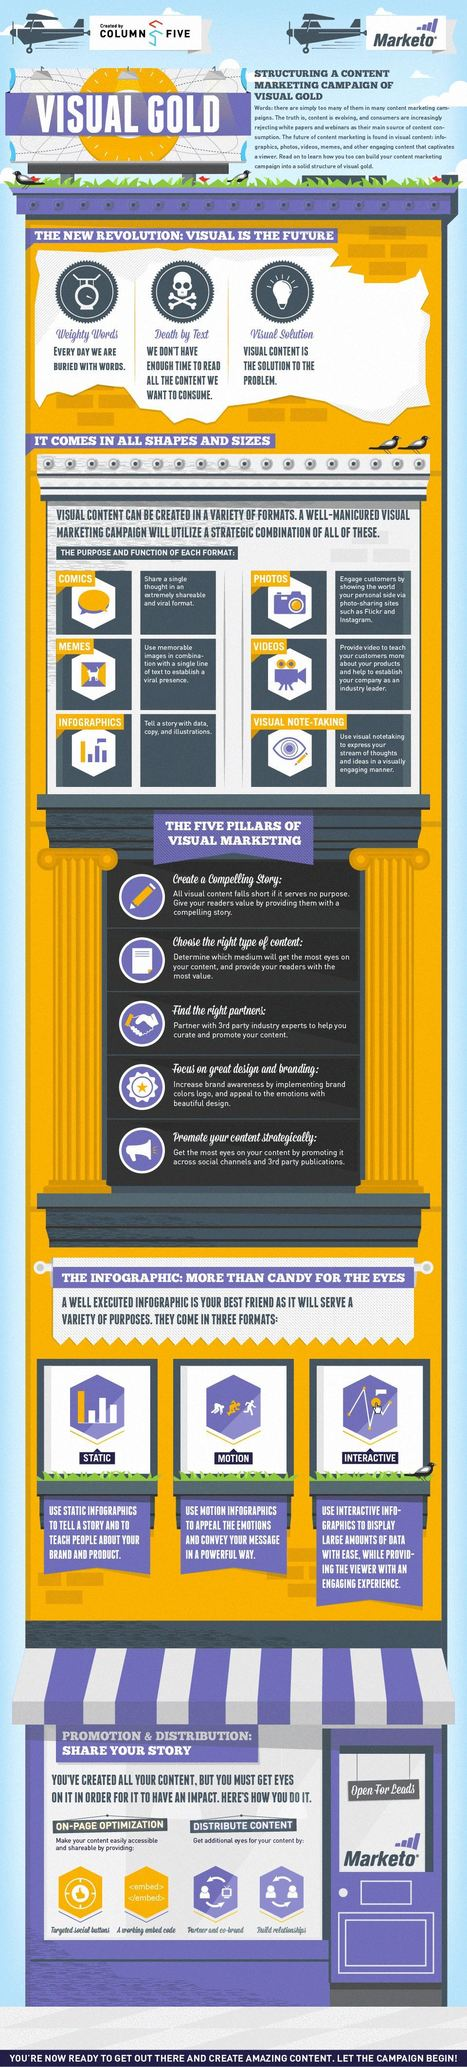 Visual Gold! The New Revolution of Content Marketing [Infographic] | Business 2 Community | Digital-News on Scoop.it today | Scoop.it